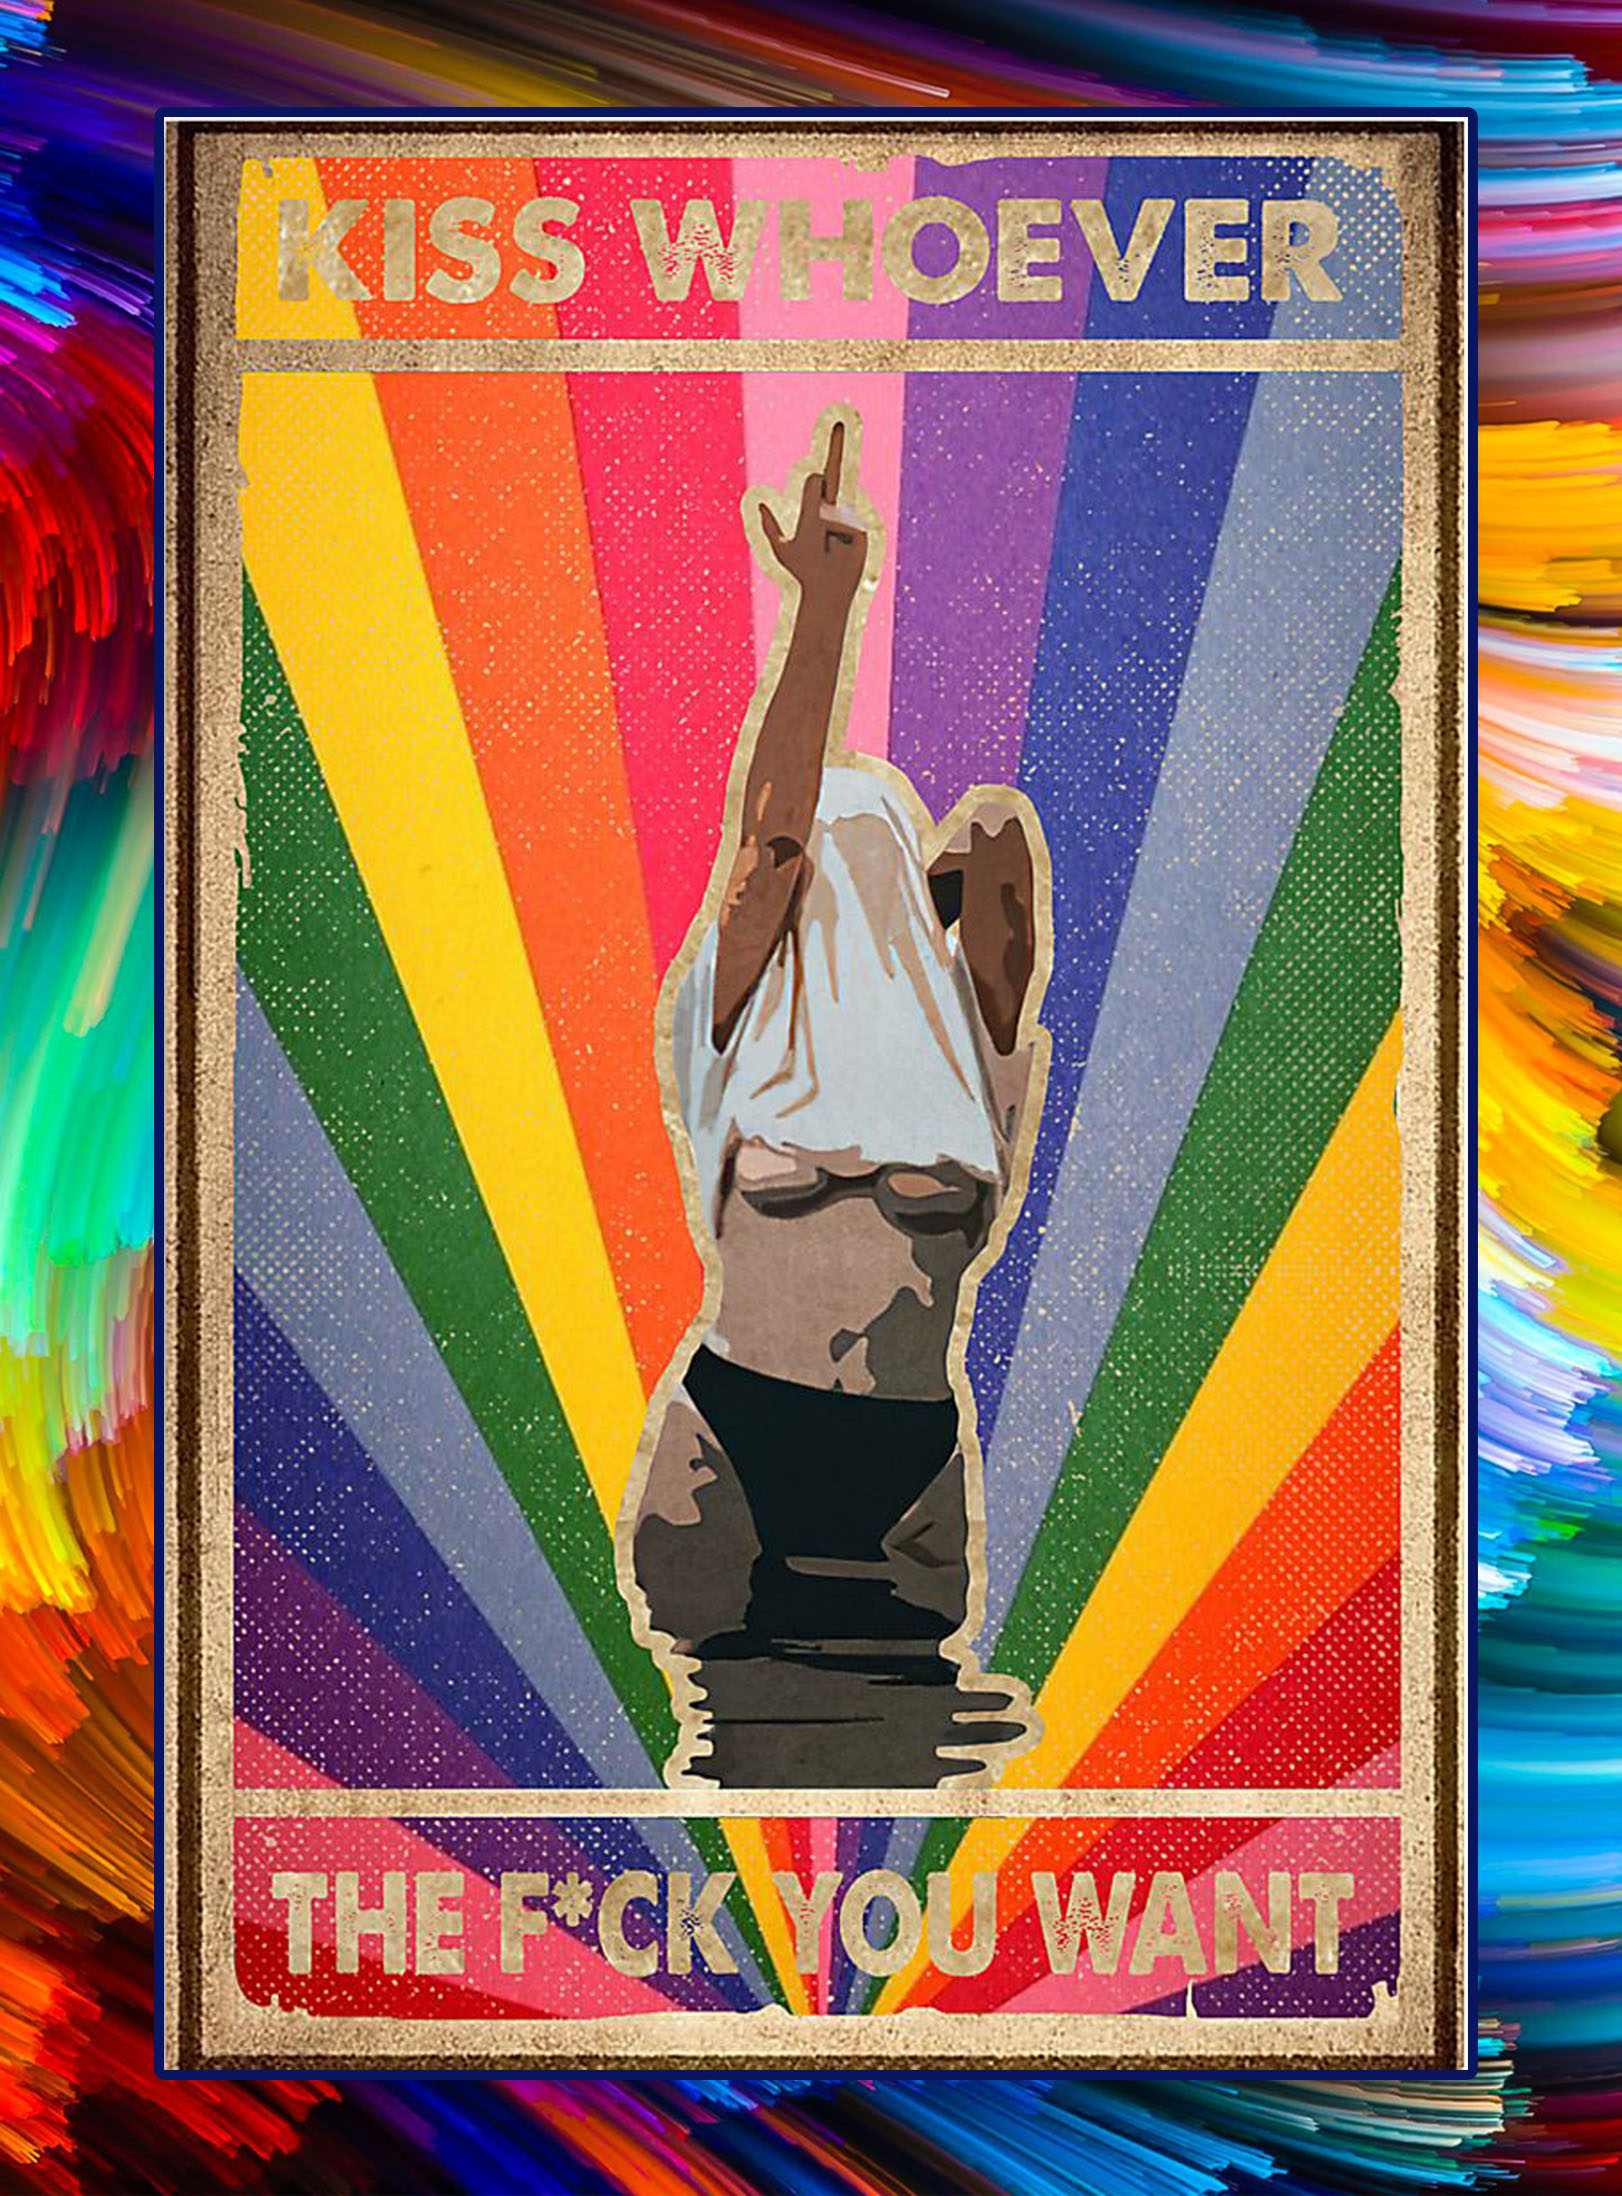 Lgbt pride kiss whoever the fuck you want poster - A3